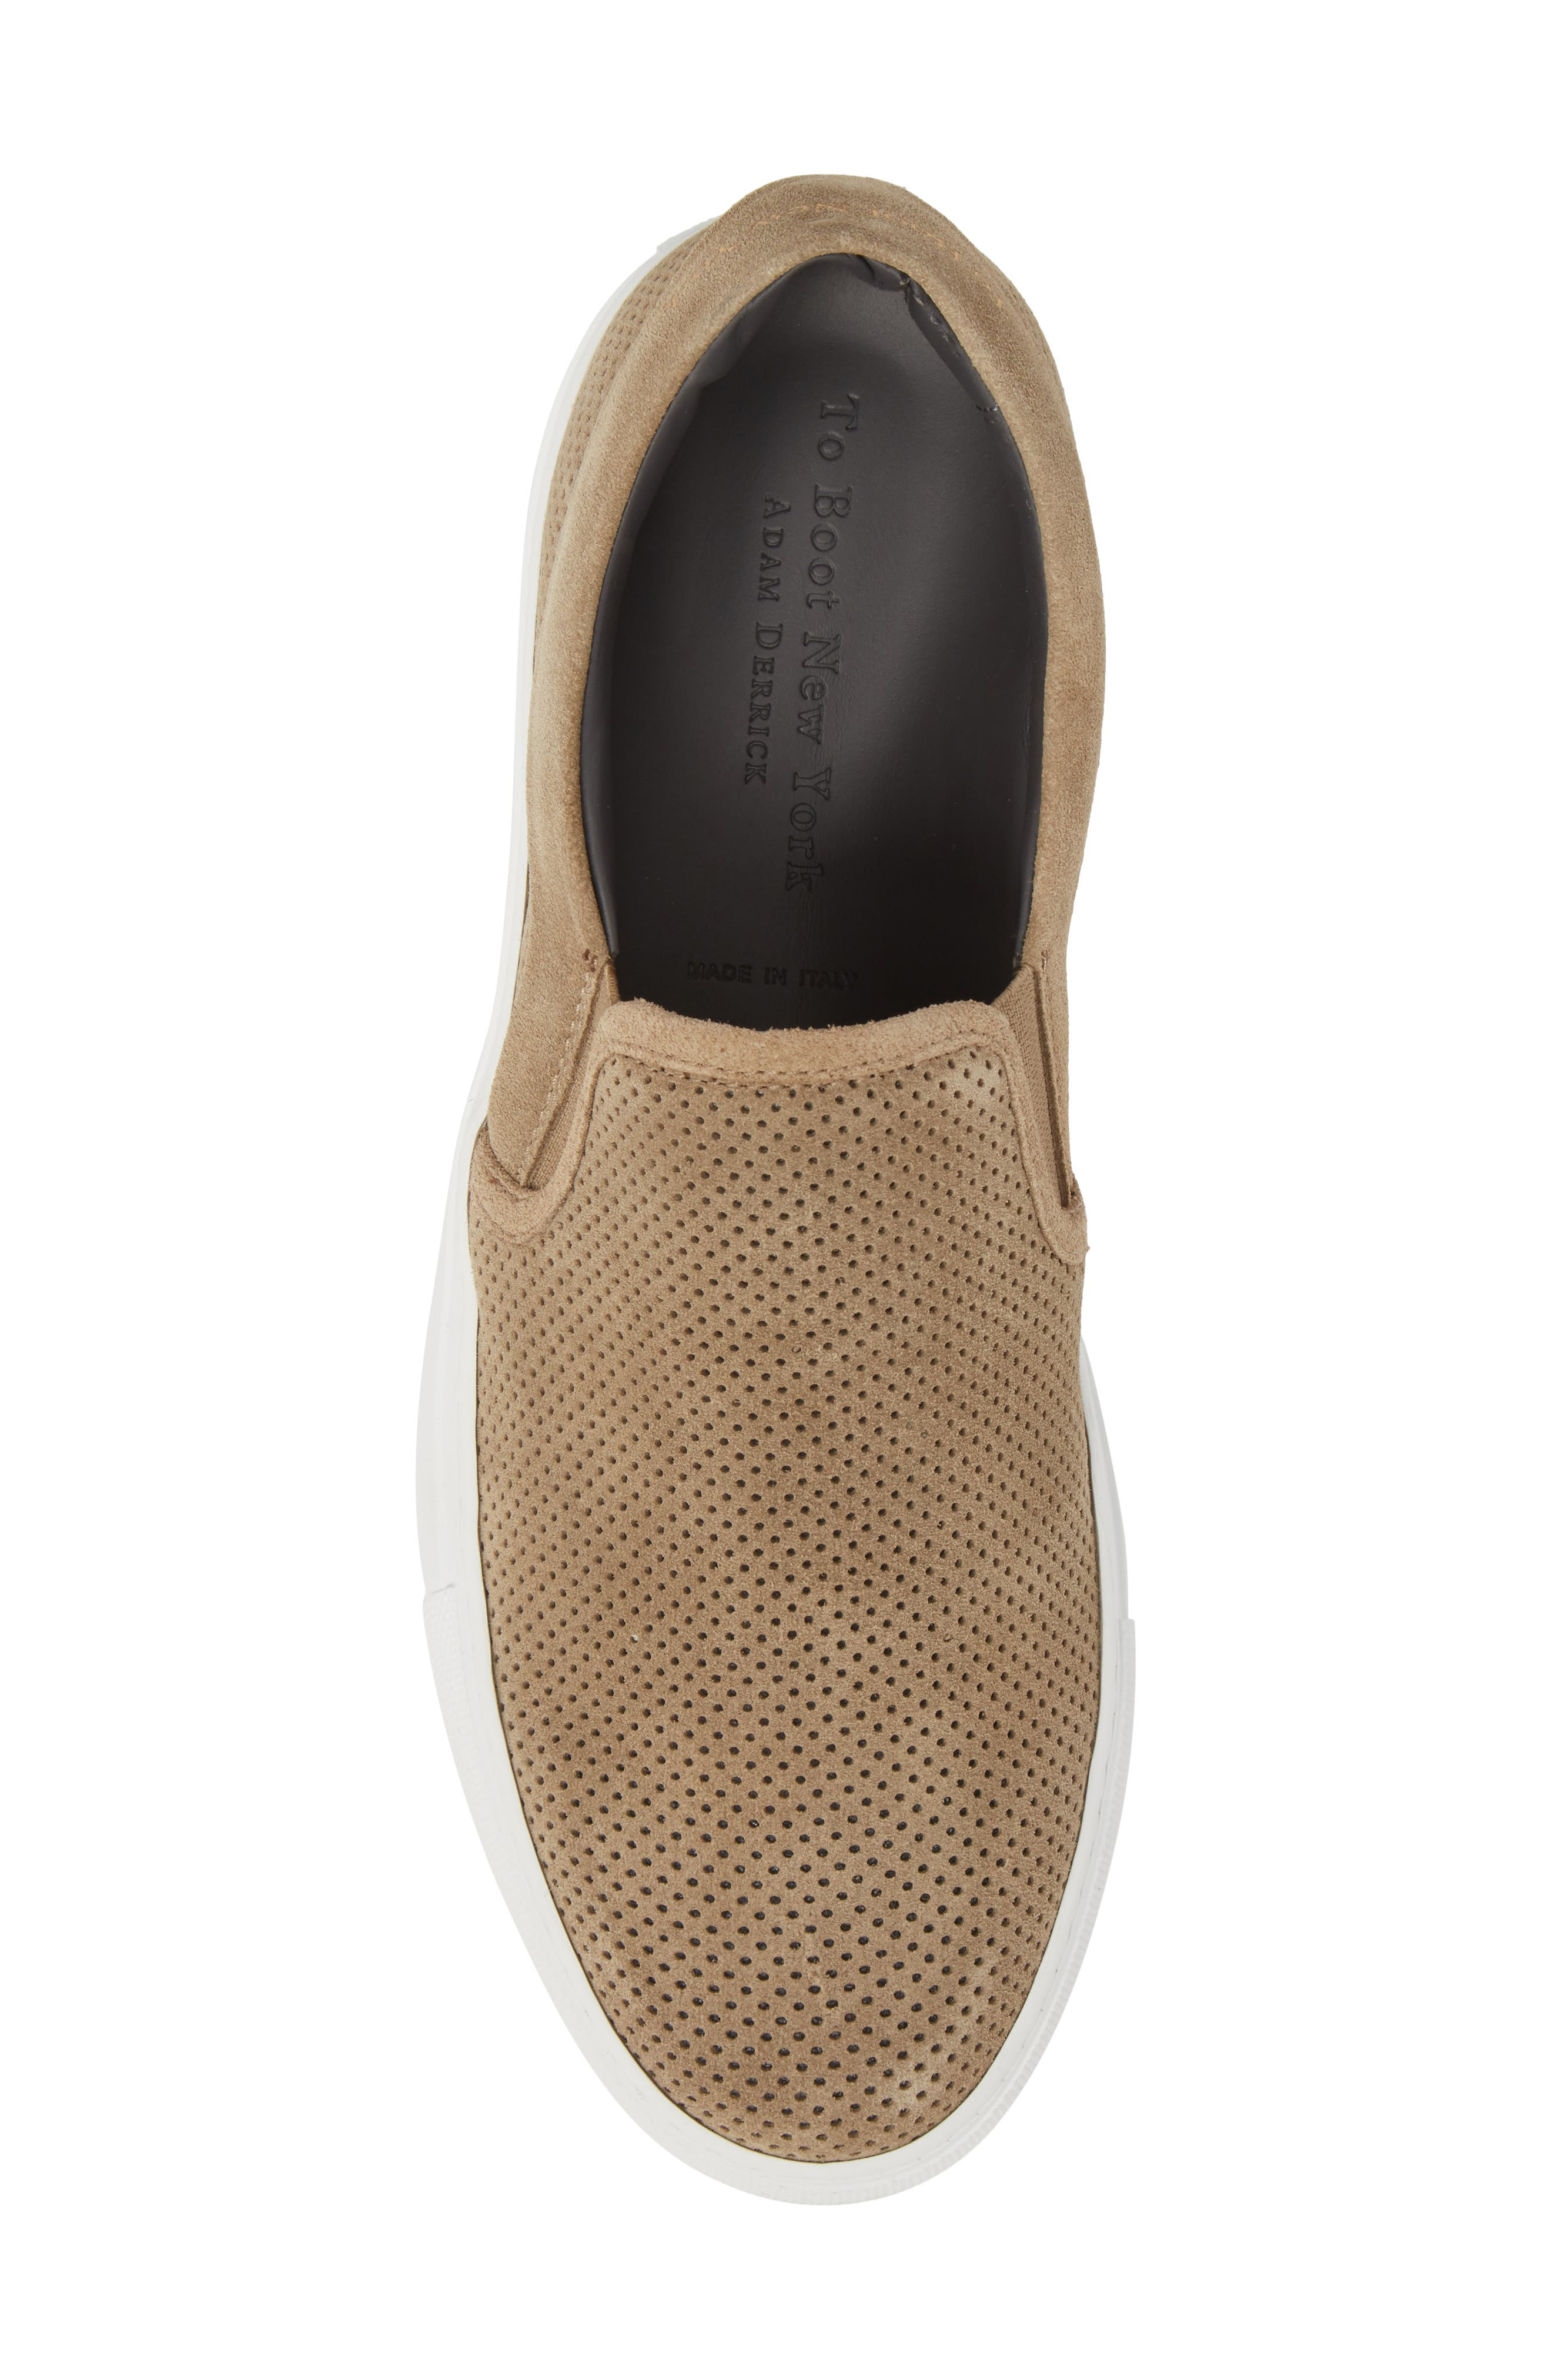 Buelton Perforated Slip-On Sneaker,                             Alternate thumbnail 5, color,                             BROWN SUEDE